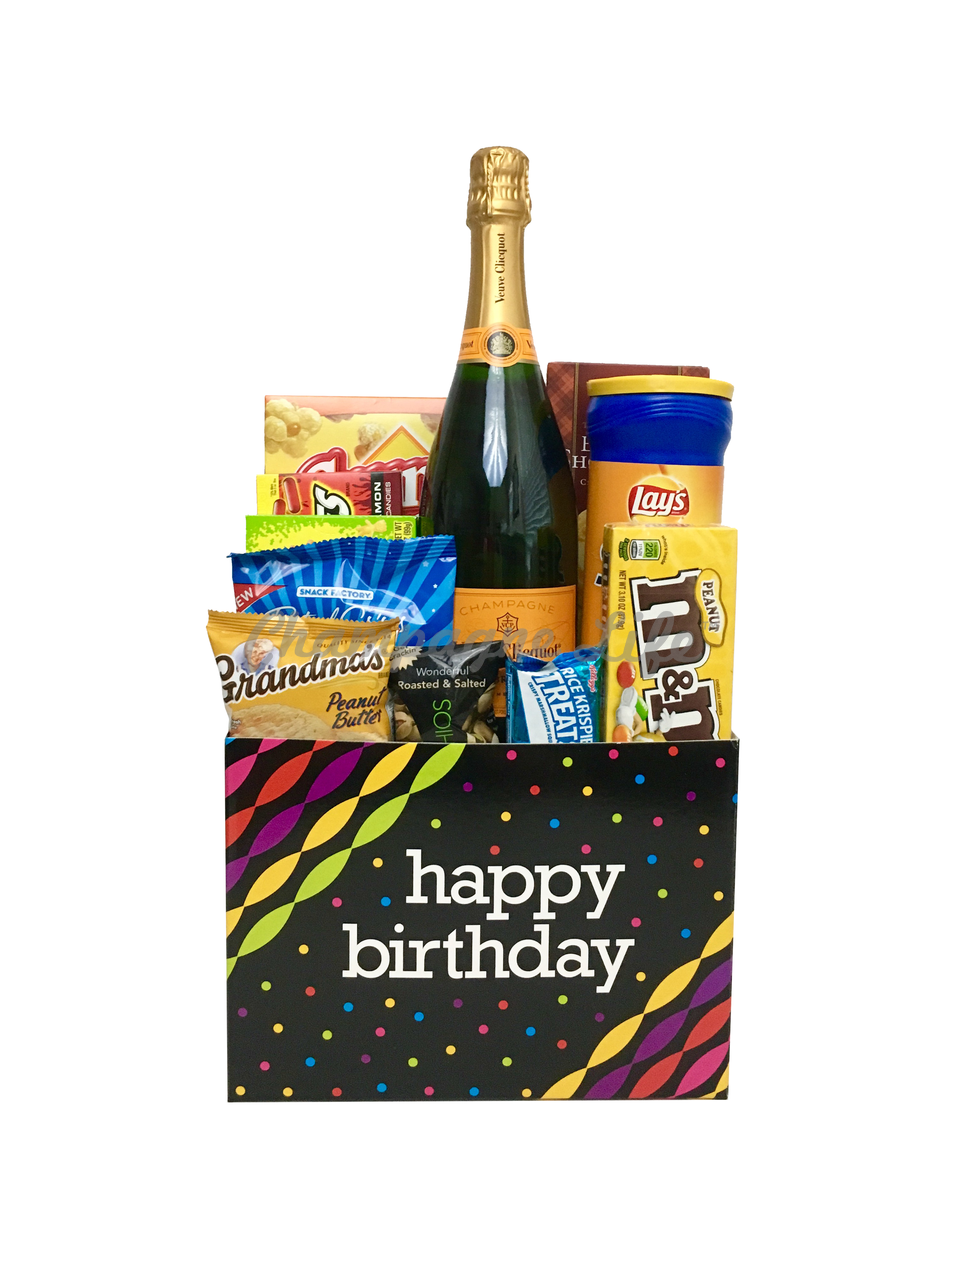 Veuve Clicquot Birthday Gift Basket 16999 A Is Available For Same Day Delivery